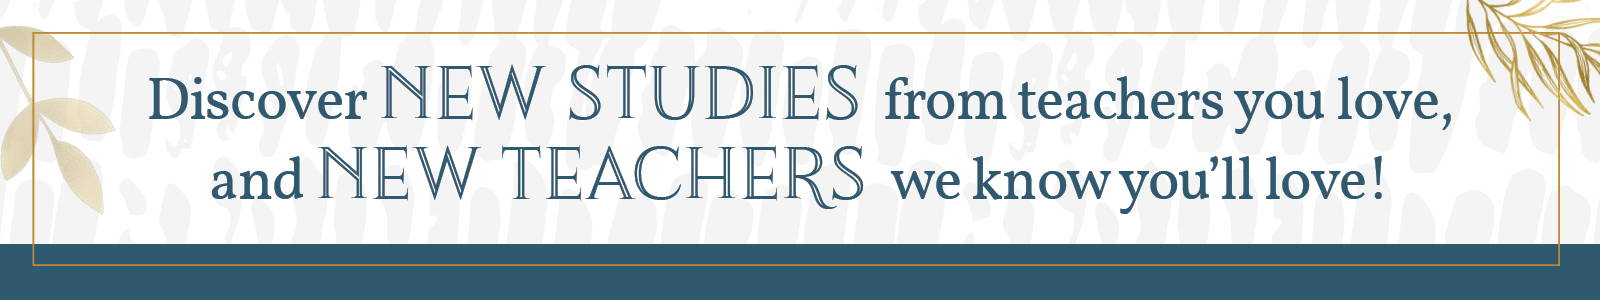 Discover New Studies from teachers you love, and New Teachers we know you'll love.